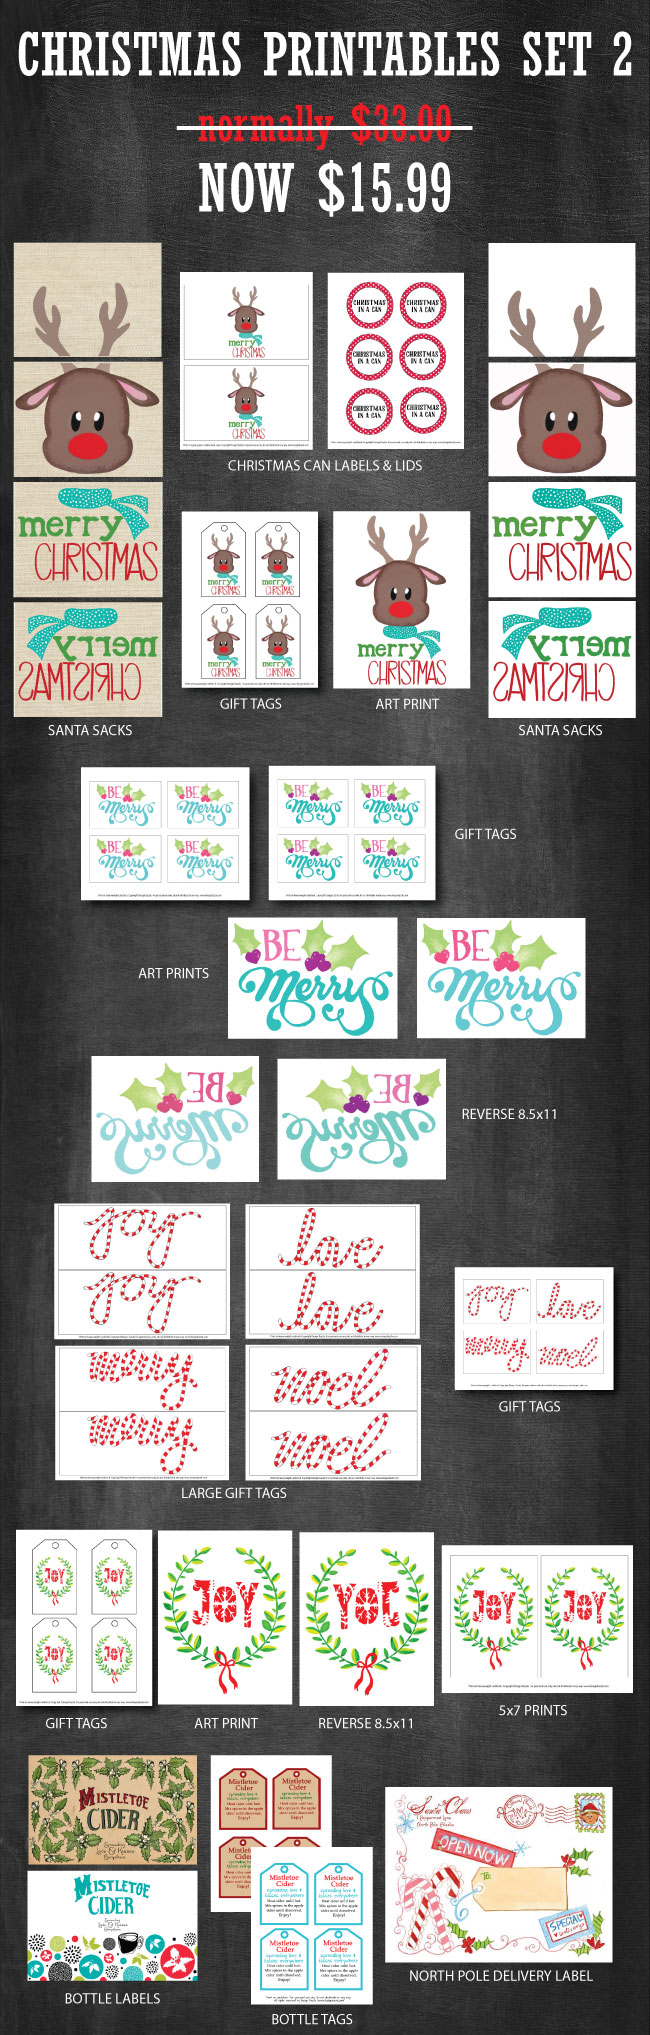 Christmas Printable Set available to purchase at www.designdazzle.com